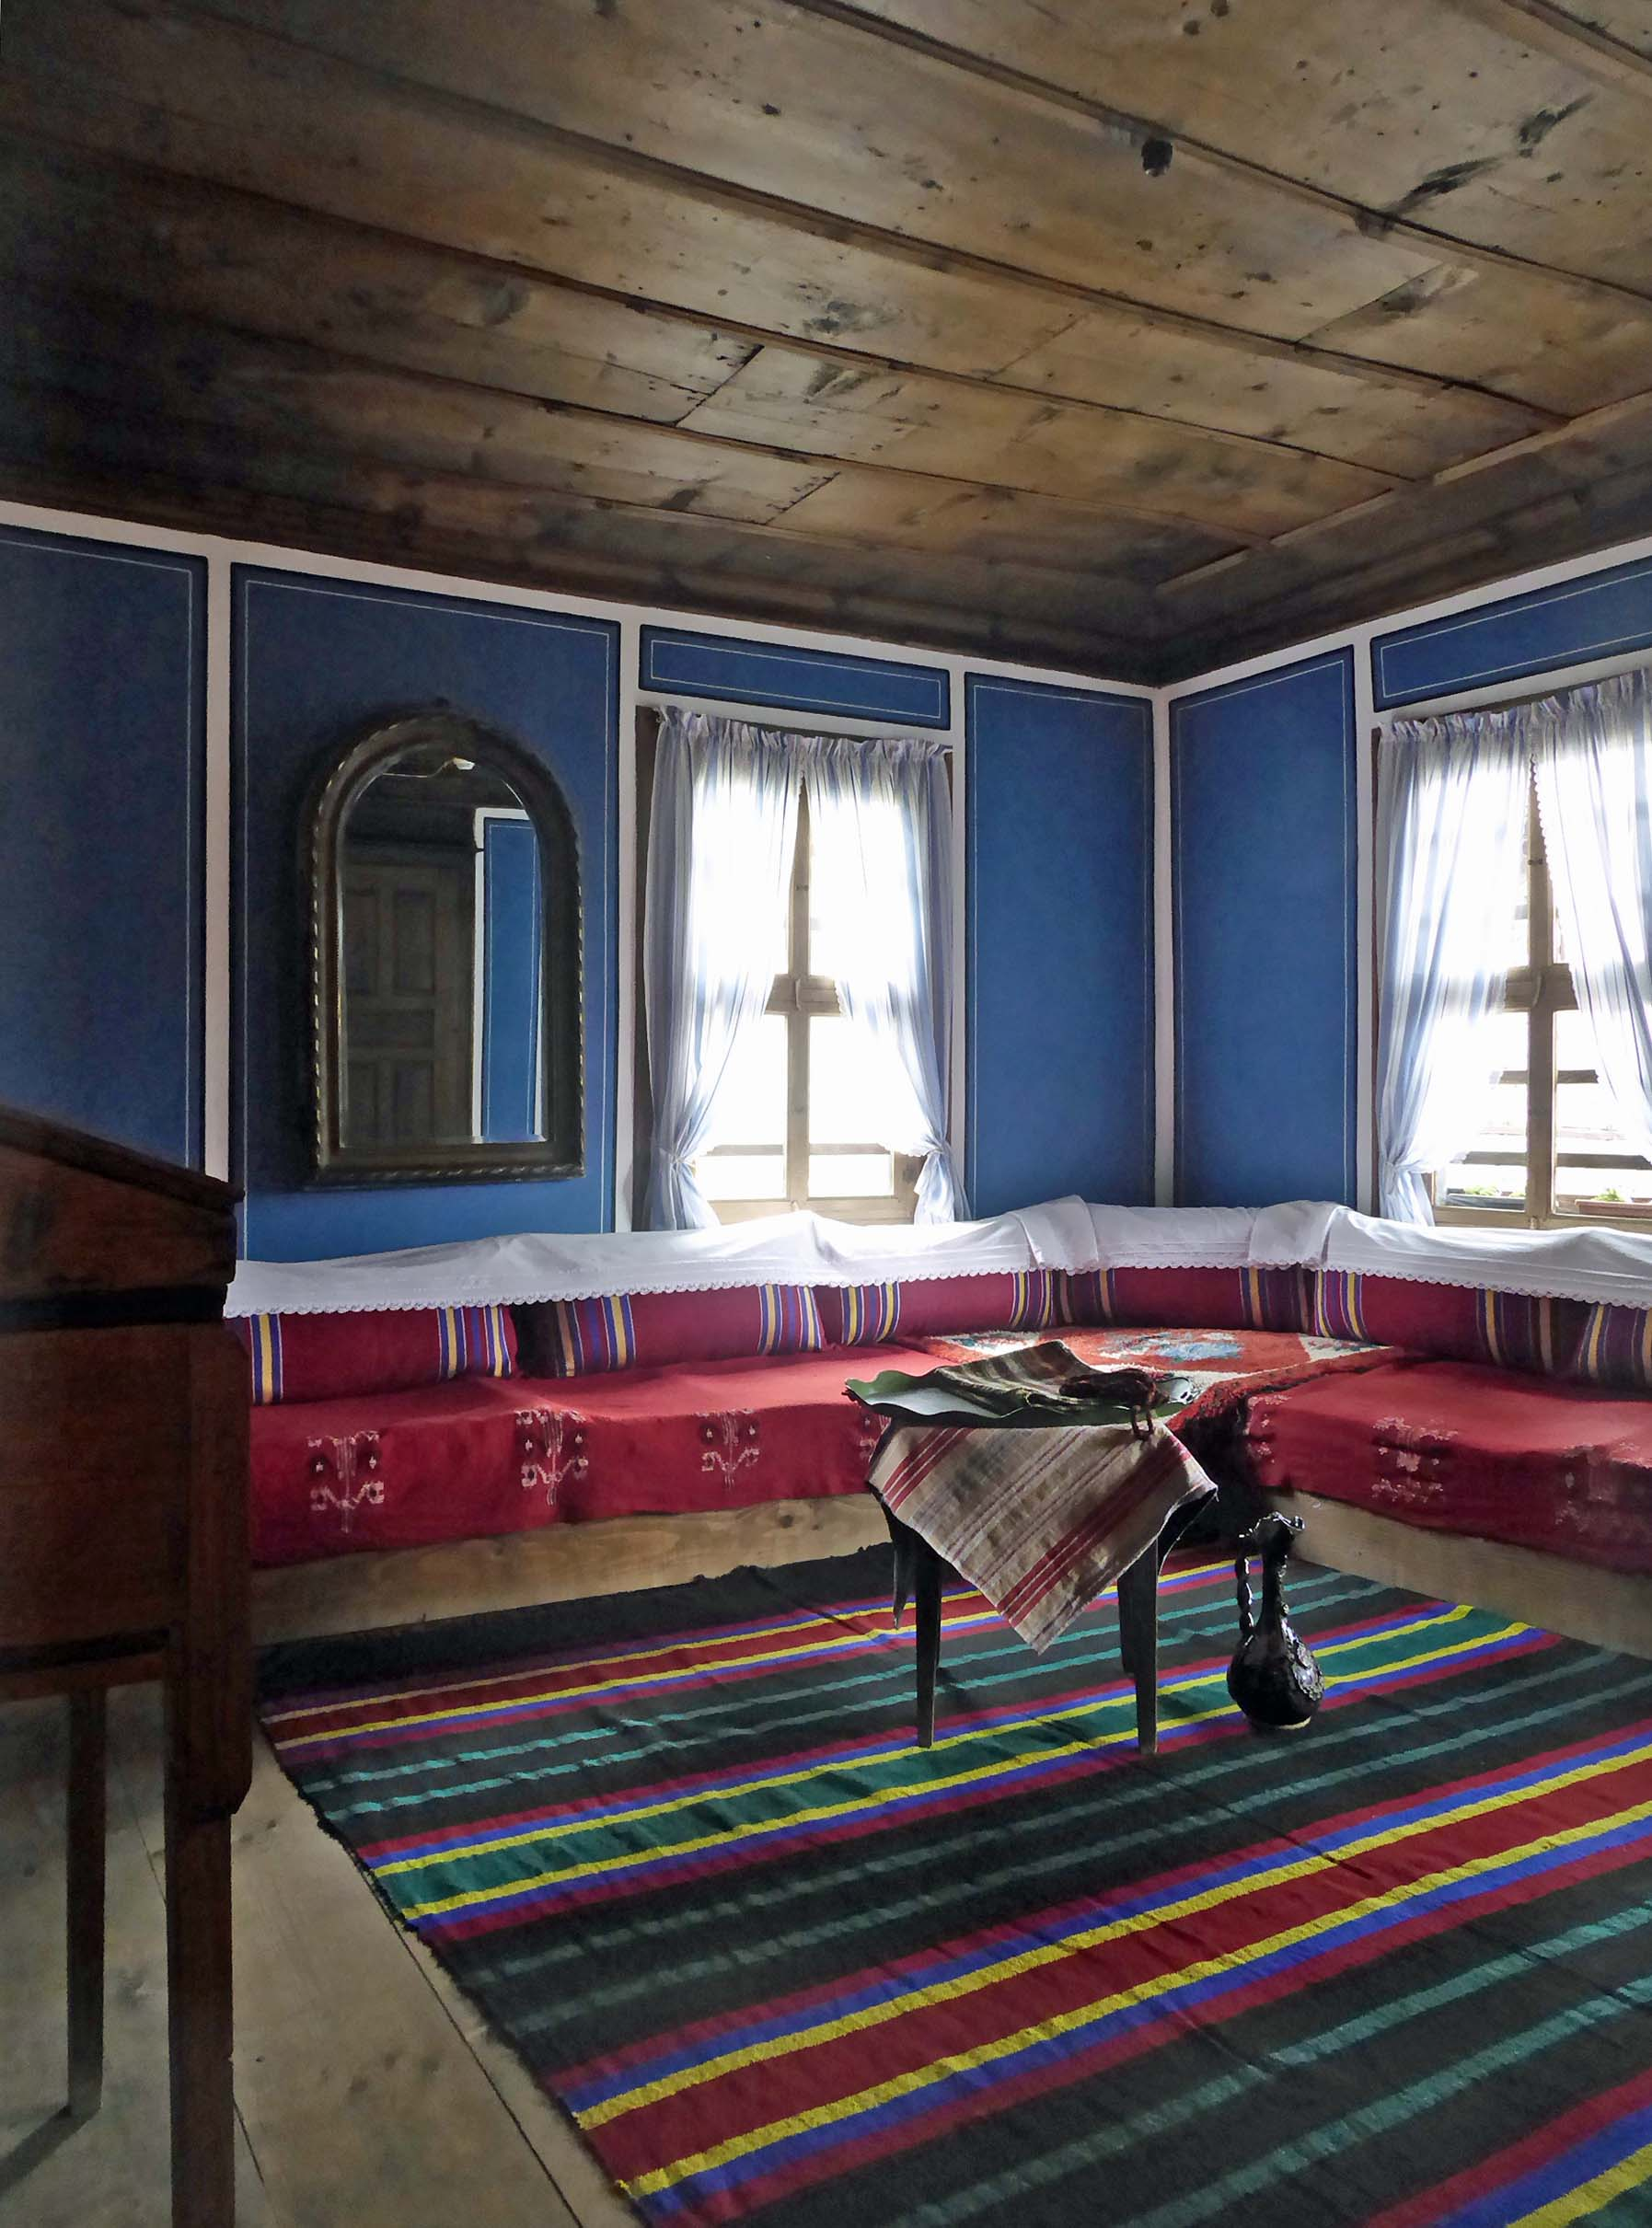 Room with blue walls, striped rug and bench seating